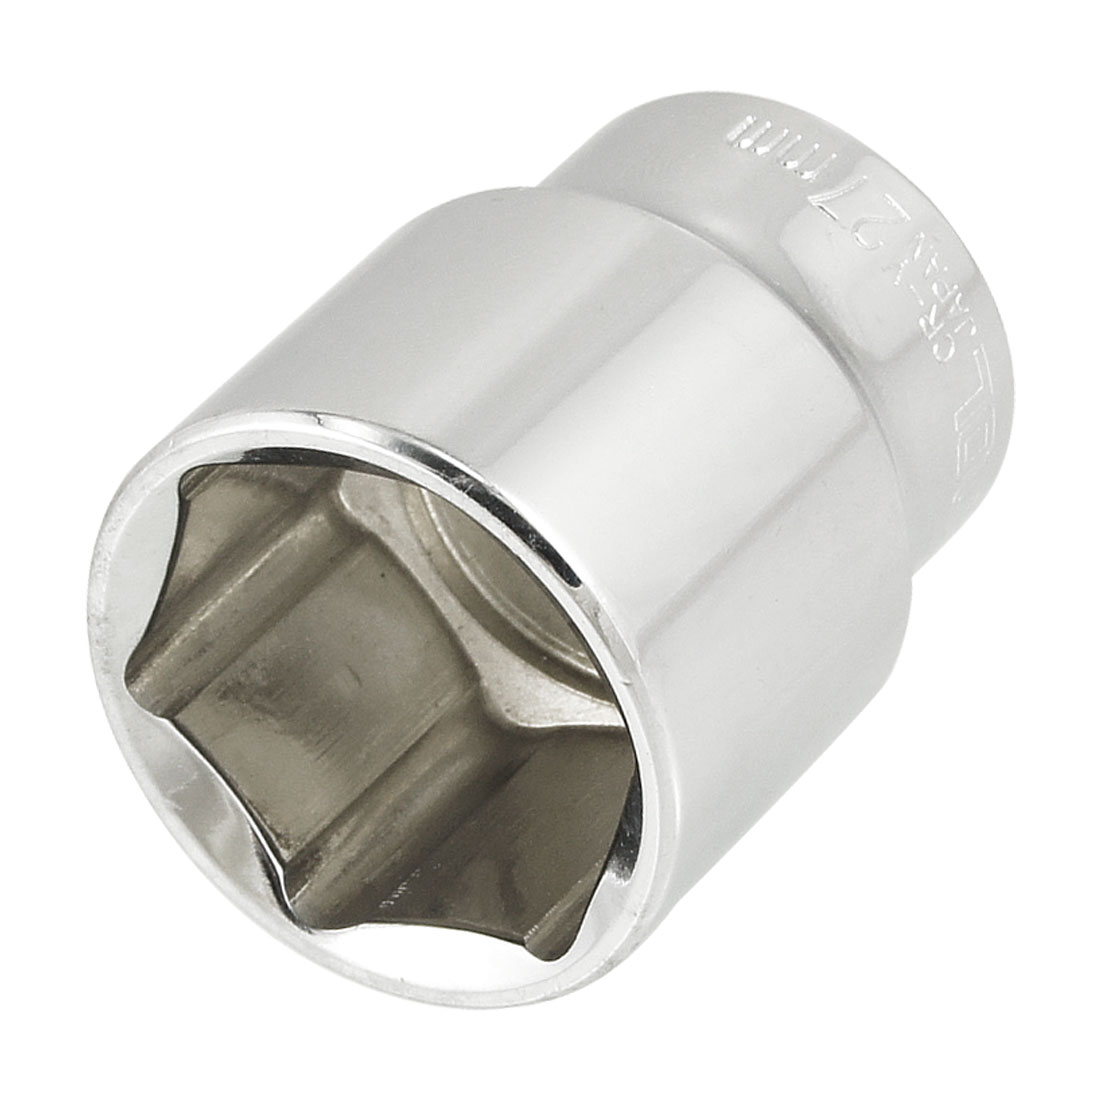 "1/2"" Square Driver 27mm Metric 6 Points Axle Nut Socket"